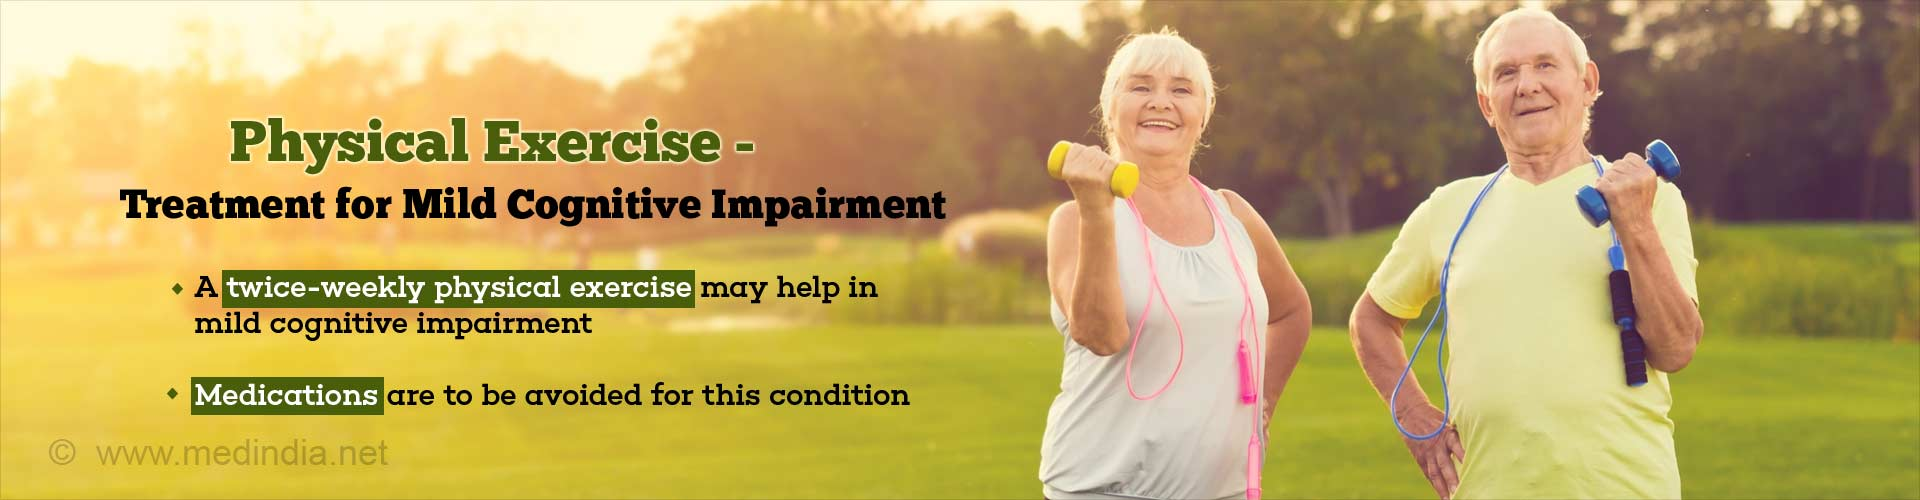 Physical Exercise to Improve Memory and Cognition